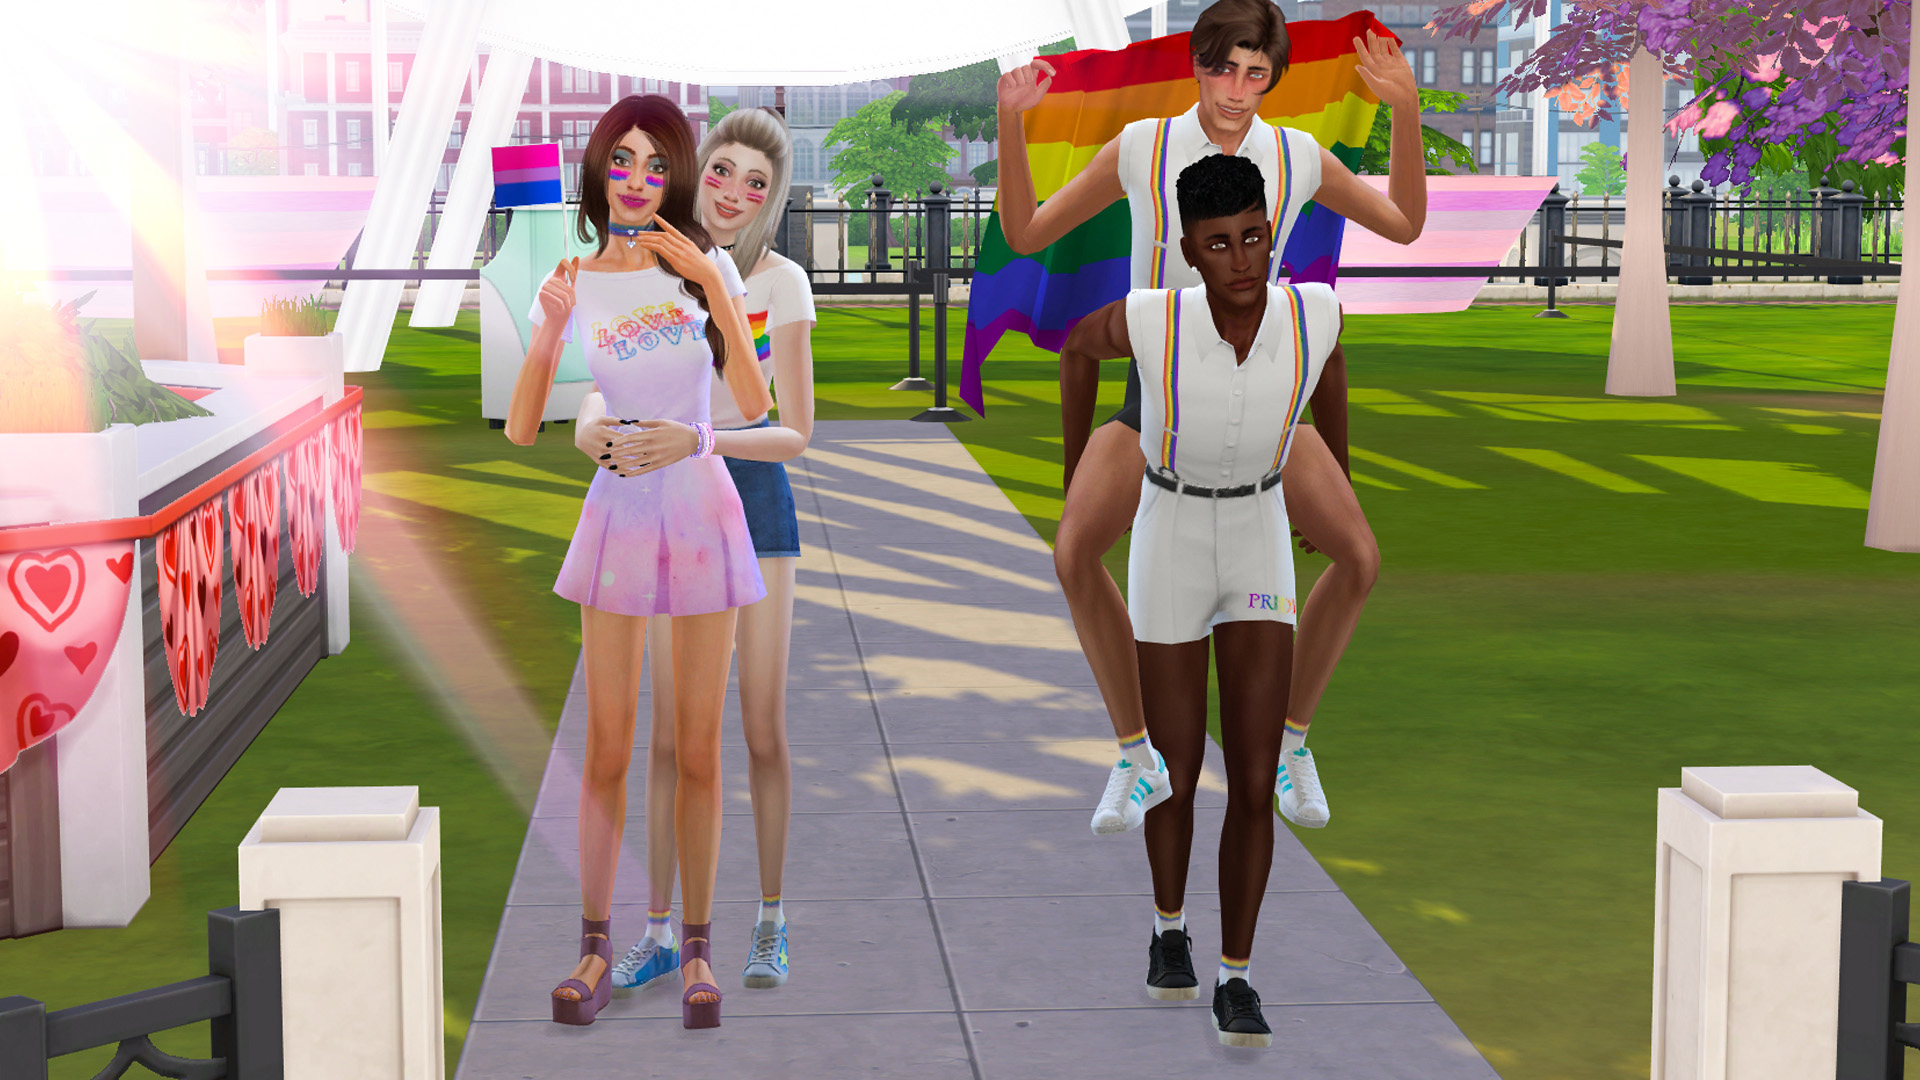 Sims 4 Pride CC Finds: Clothing & Room Items | Desire Anne Gaming